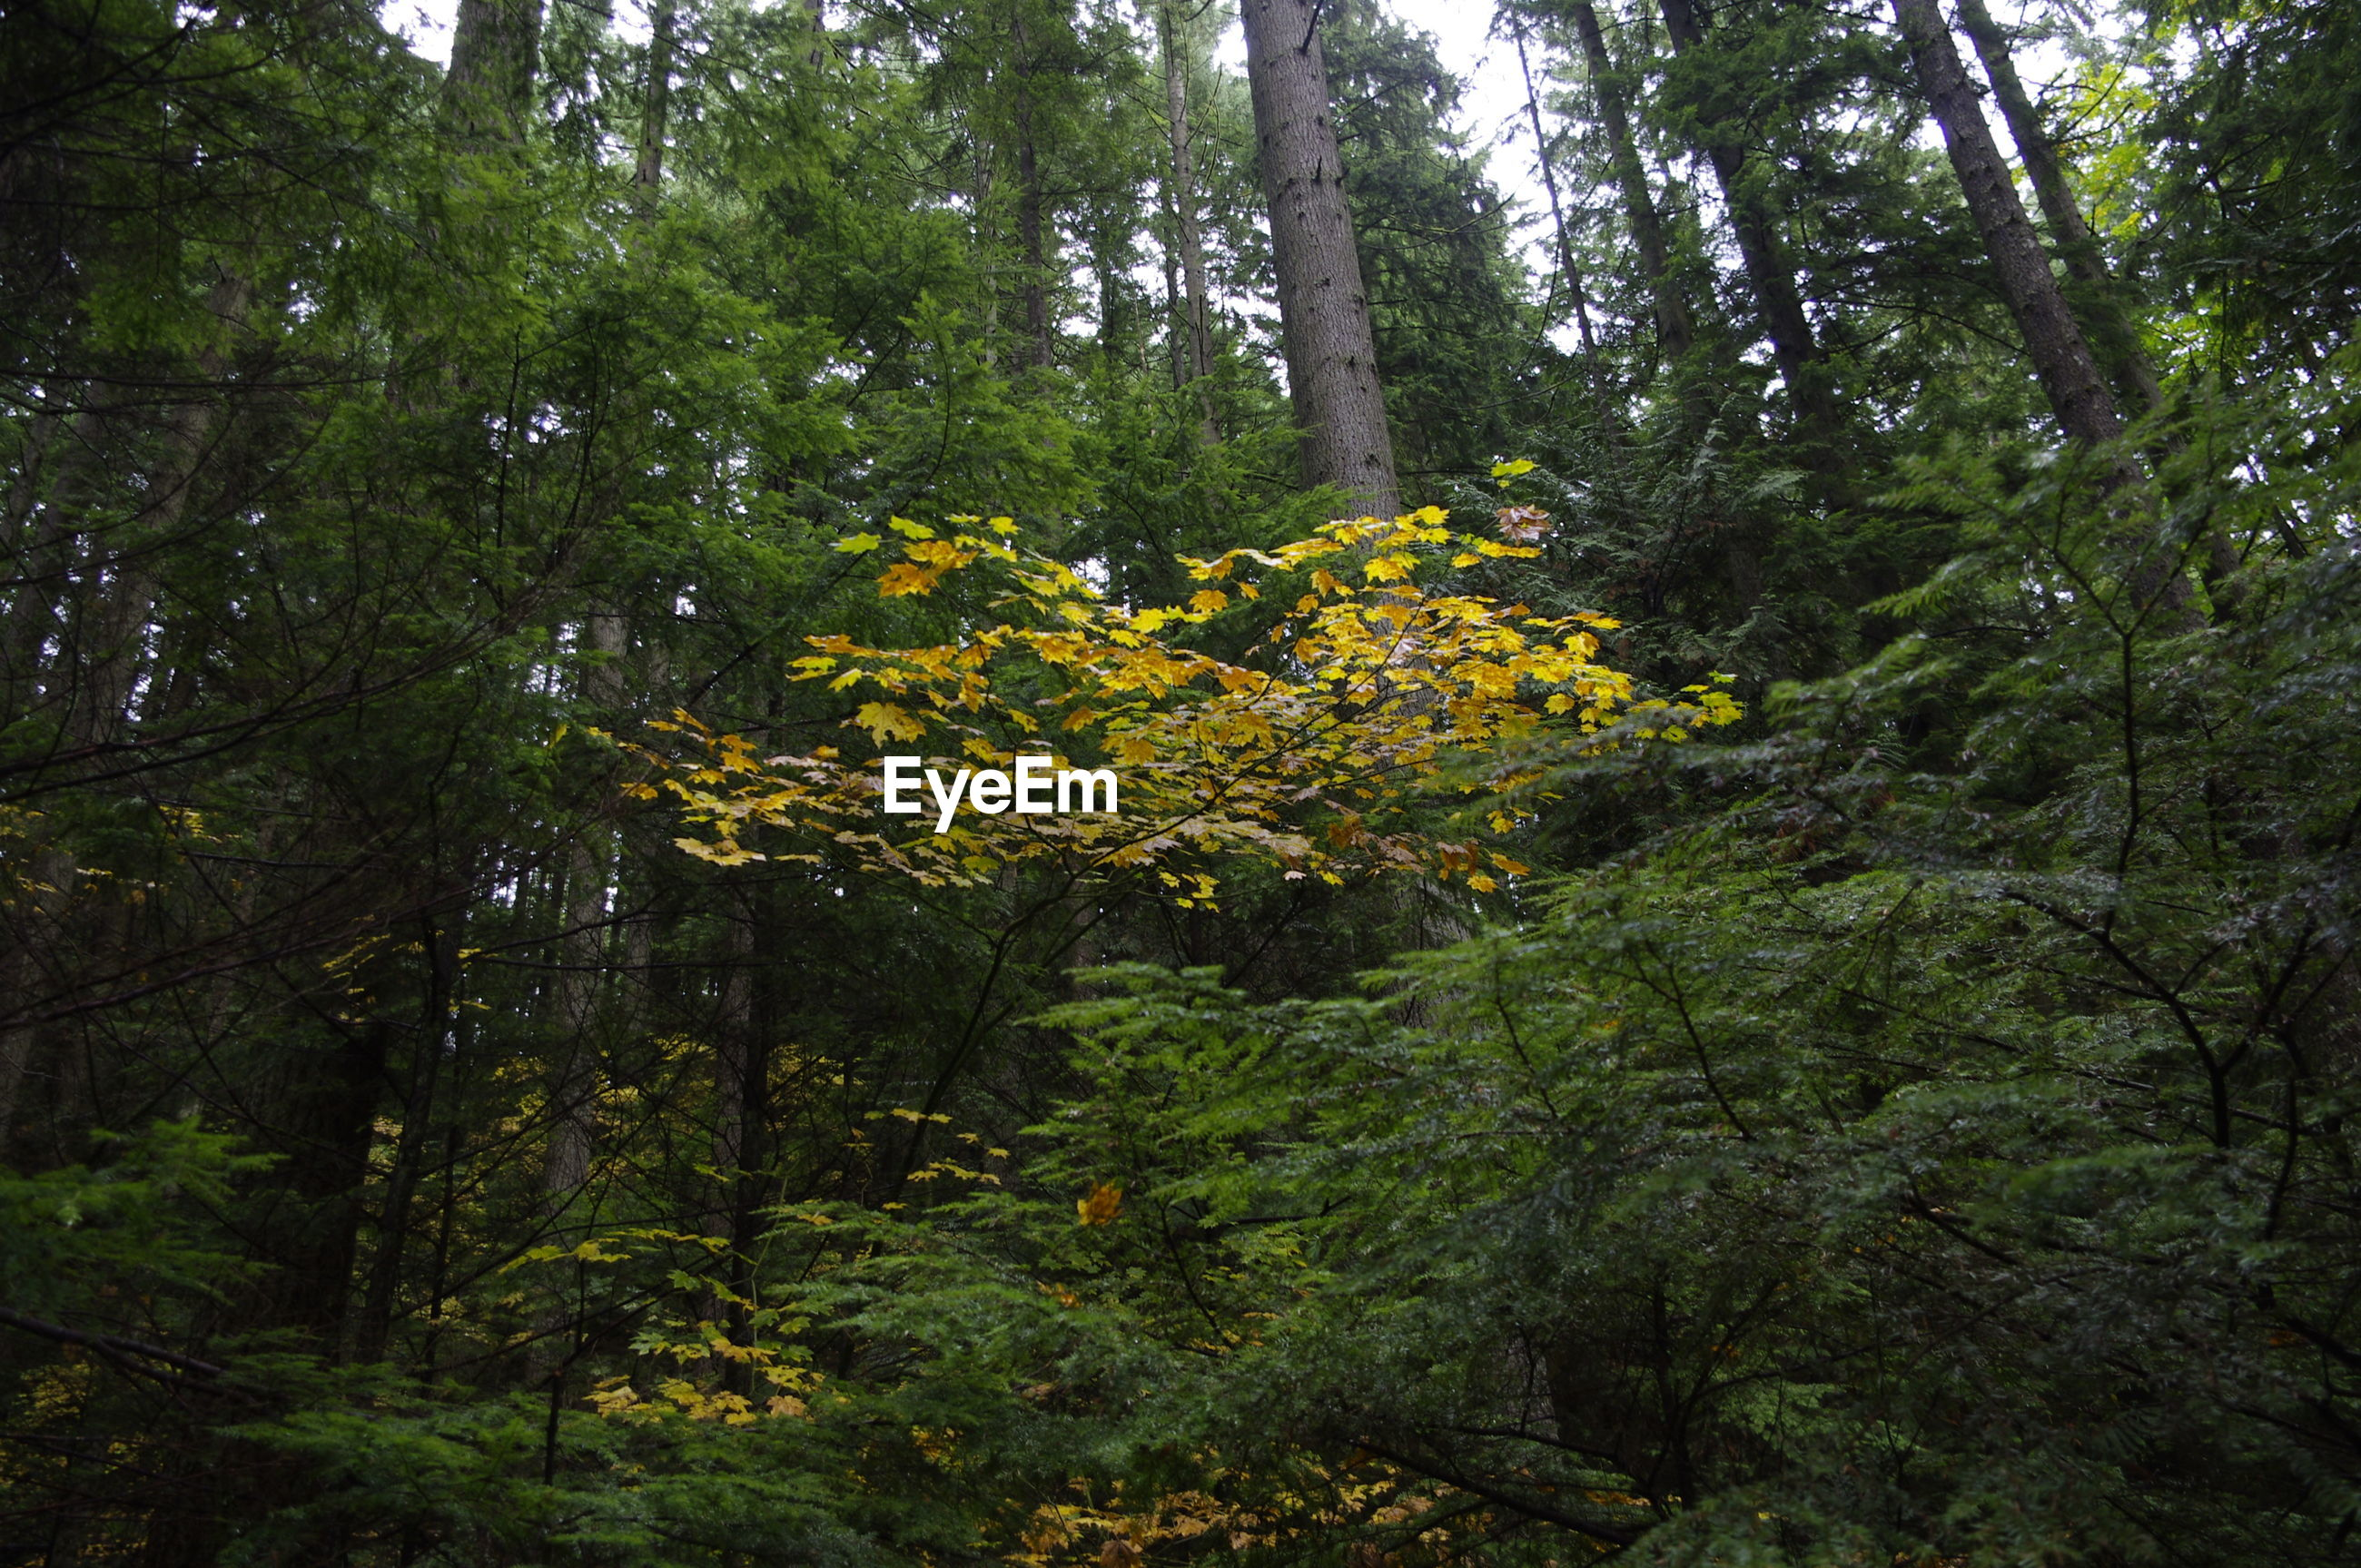 YELLOW FLOWERS GROWING ON TREE IN FOREST